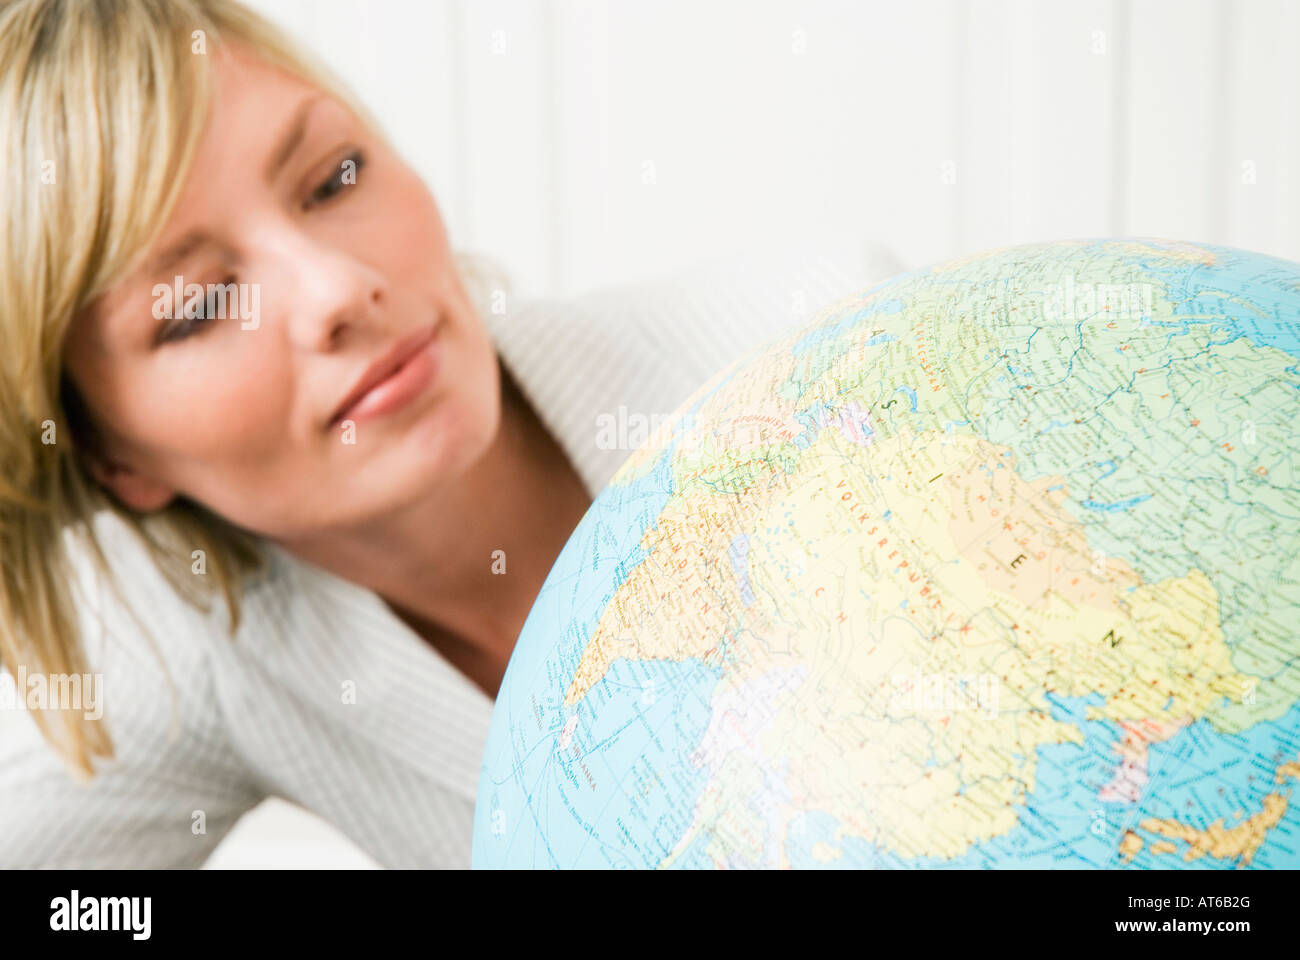 Young businesswoman looking at globe, portrait, close-up Photo Stock